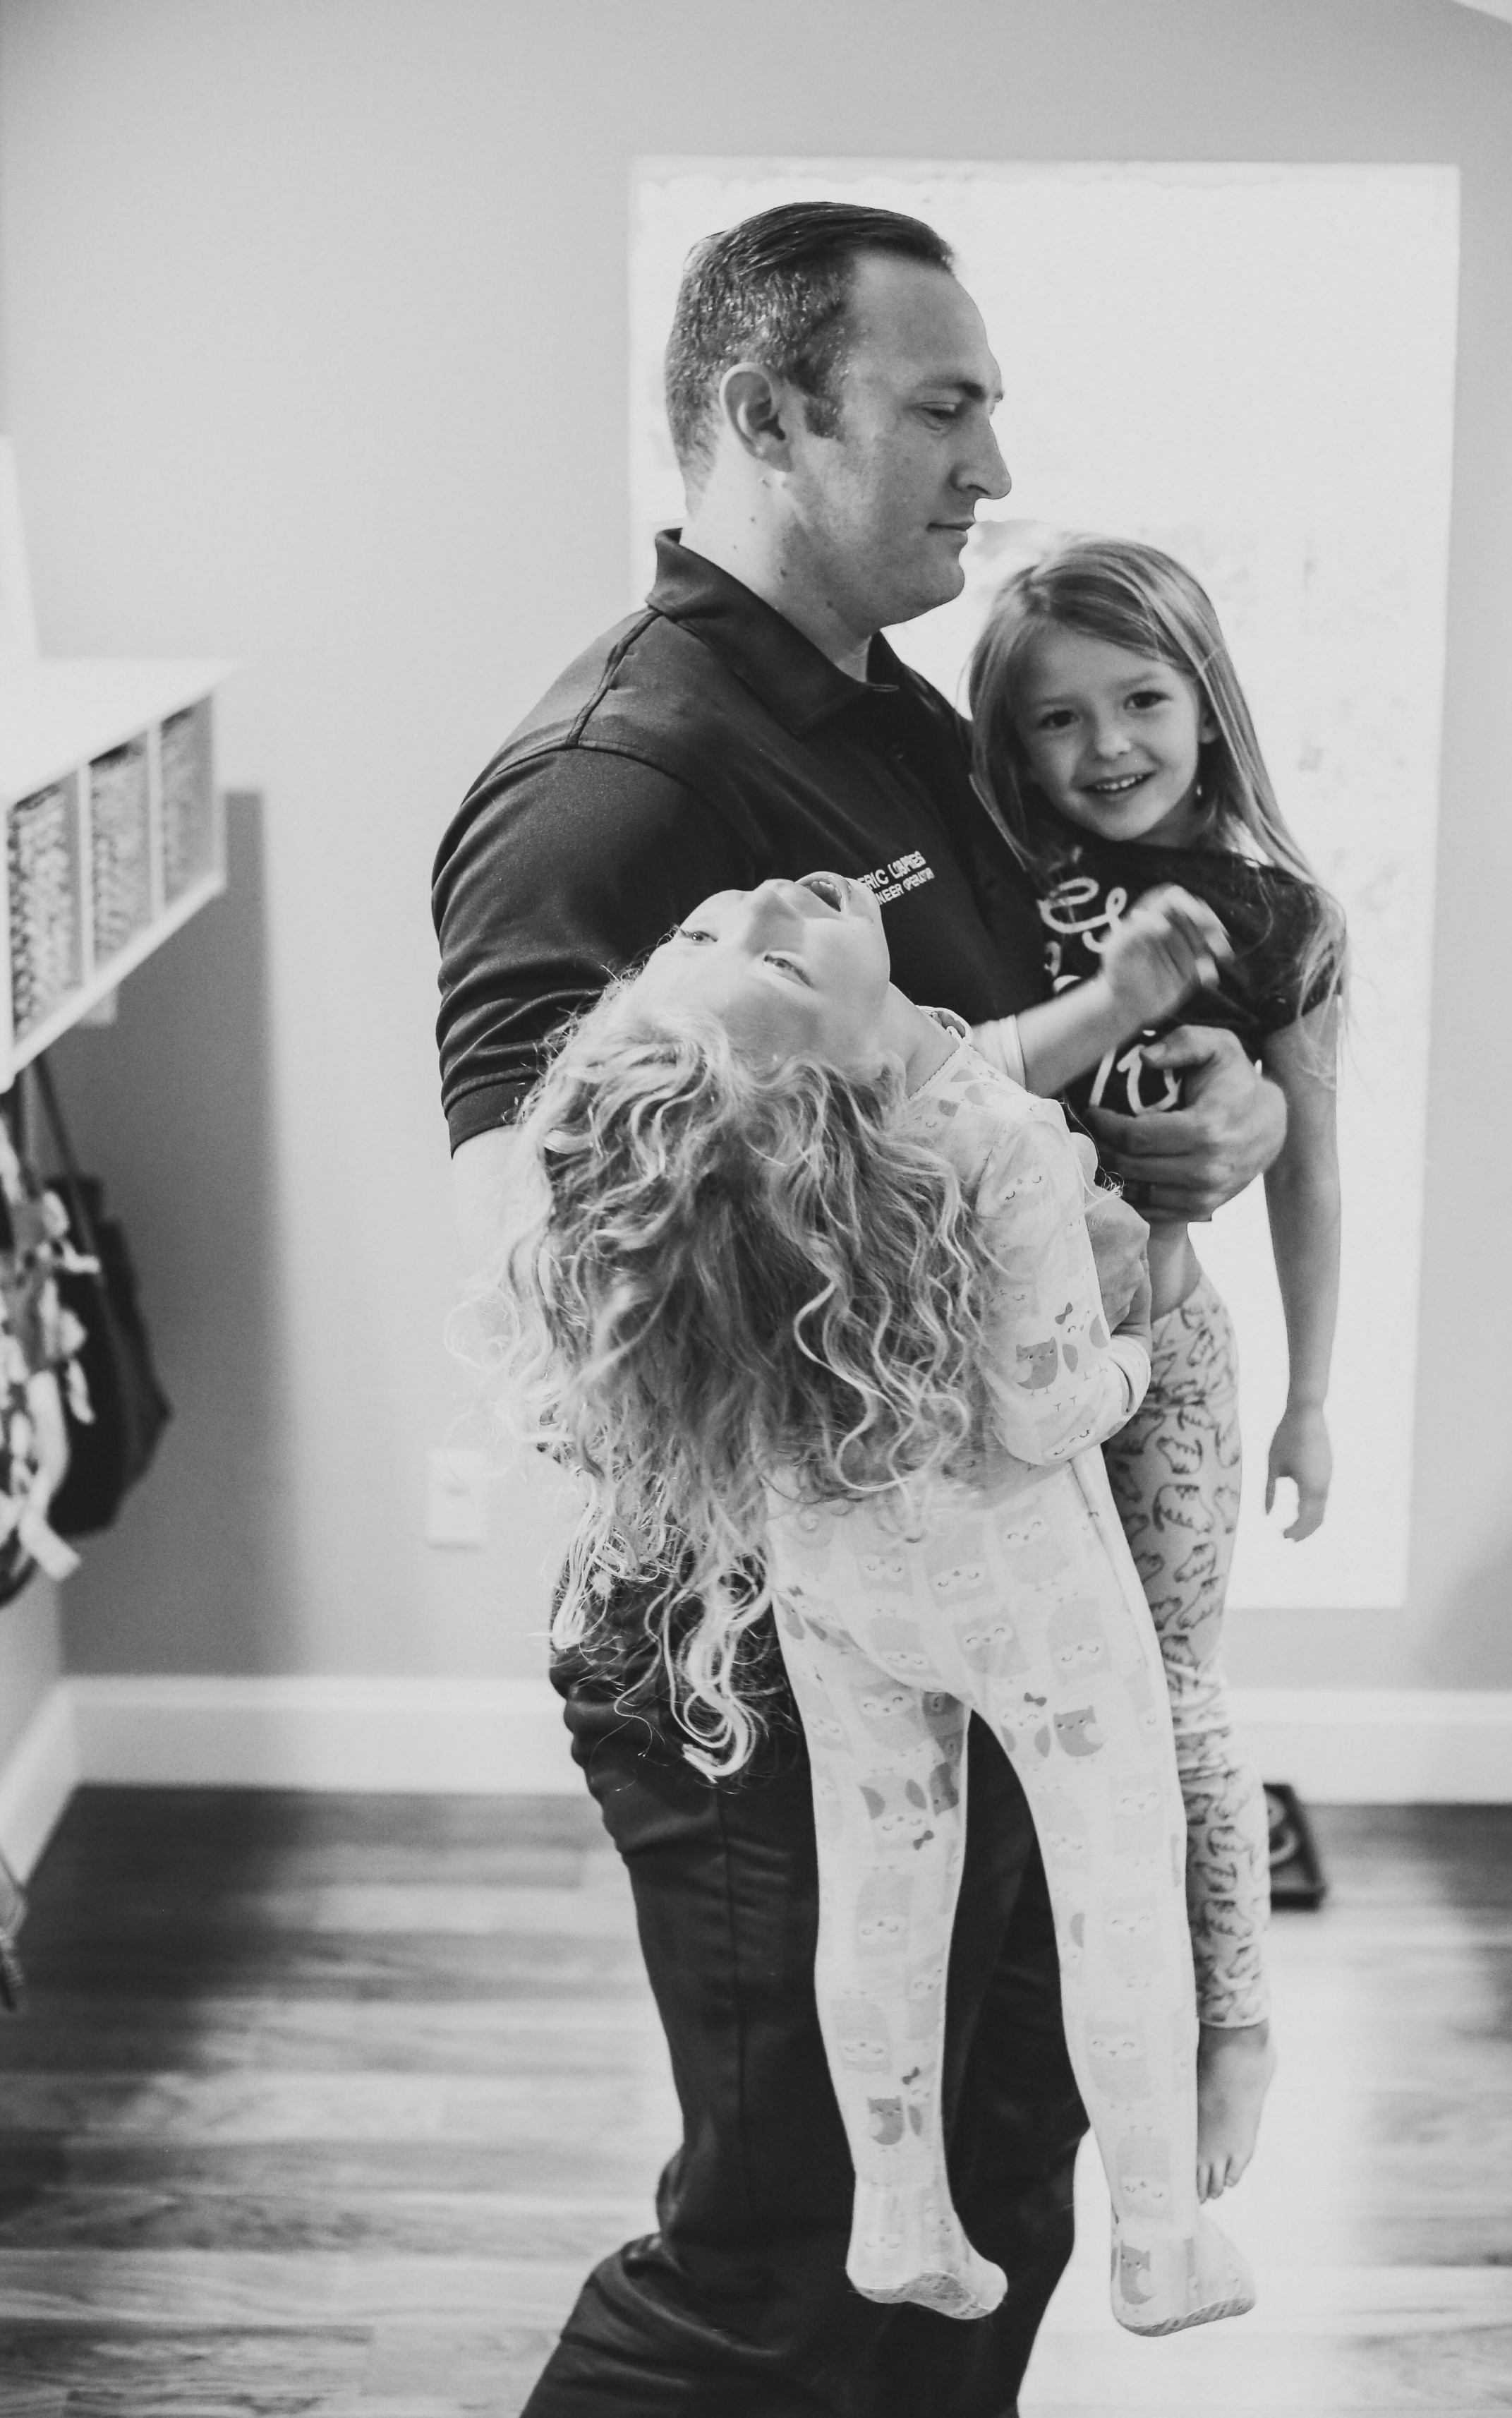 5 Tips for the Mom Whose Husband Works Long Hours- this is such an encouraging read. When your husband works long hours it can sometime feel isolating with the kids. This reminds me I am not alone.